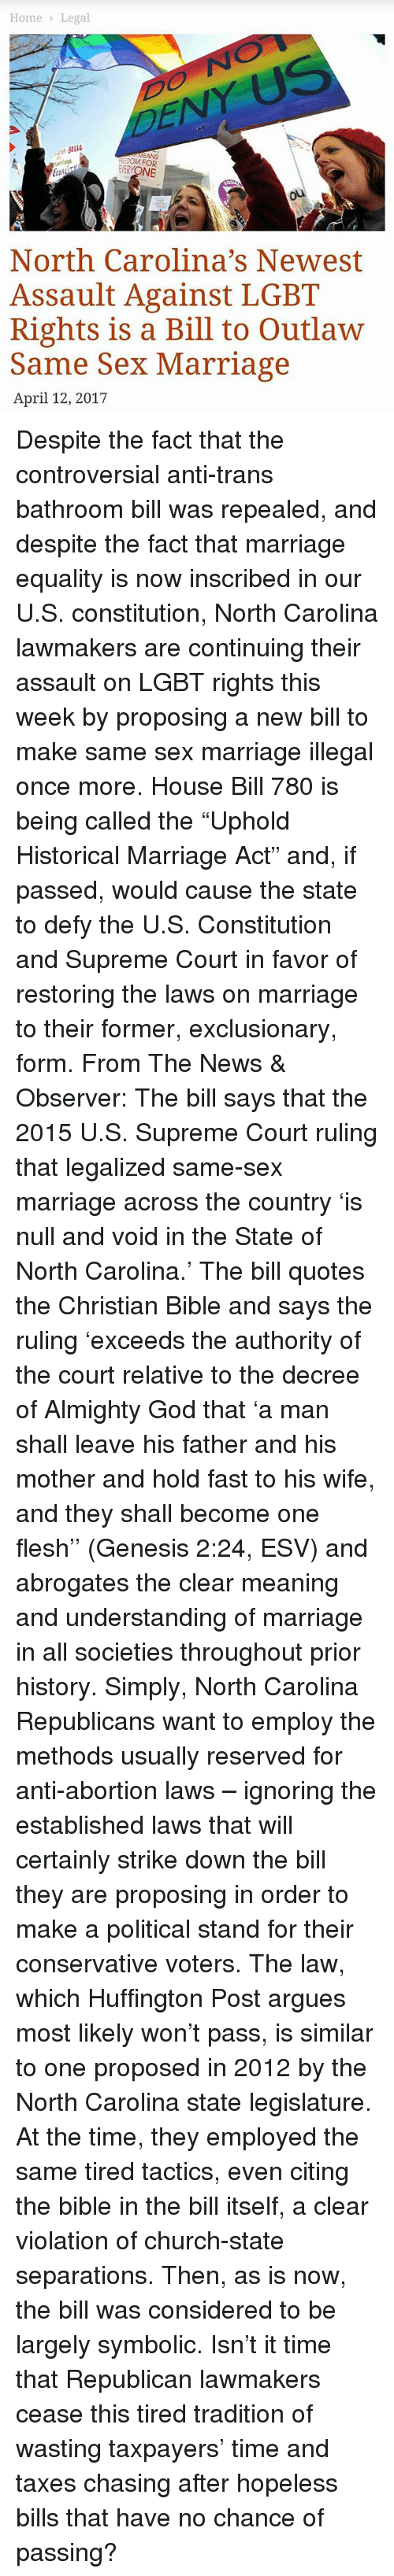 "the null and void decree of the supreme court in north carolina on gay marriage ""the bill says that the 2015 us supreme court ruling that legalized same-sex marriage across the country 'is null and void in the state of north carolina."